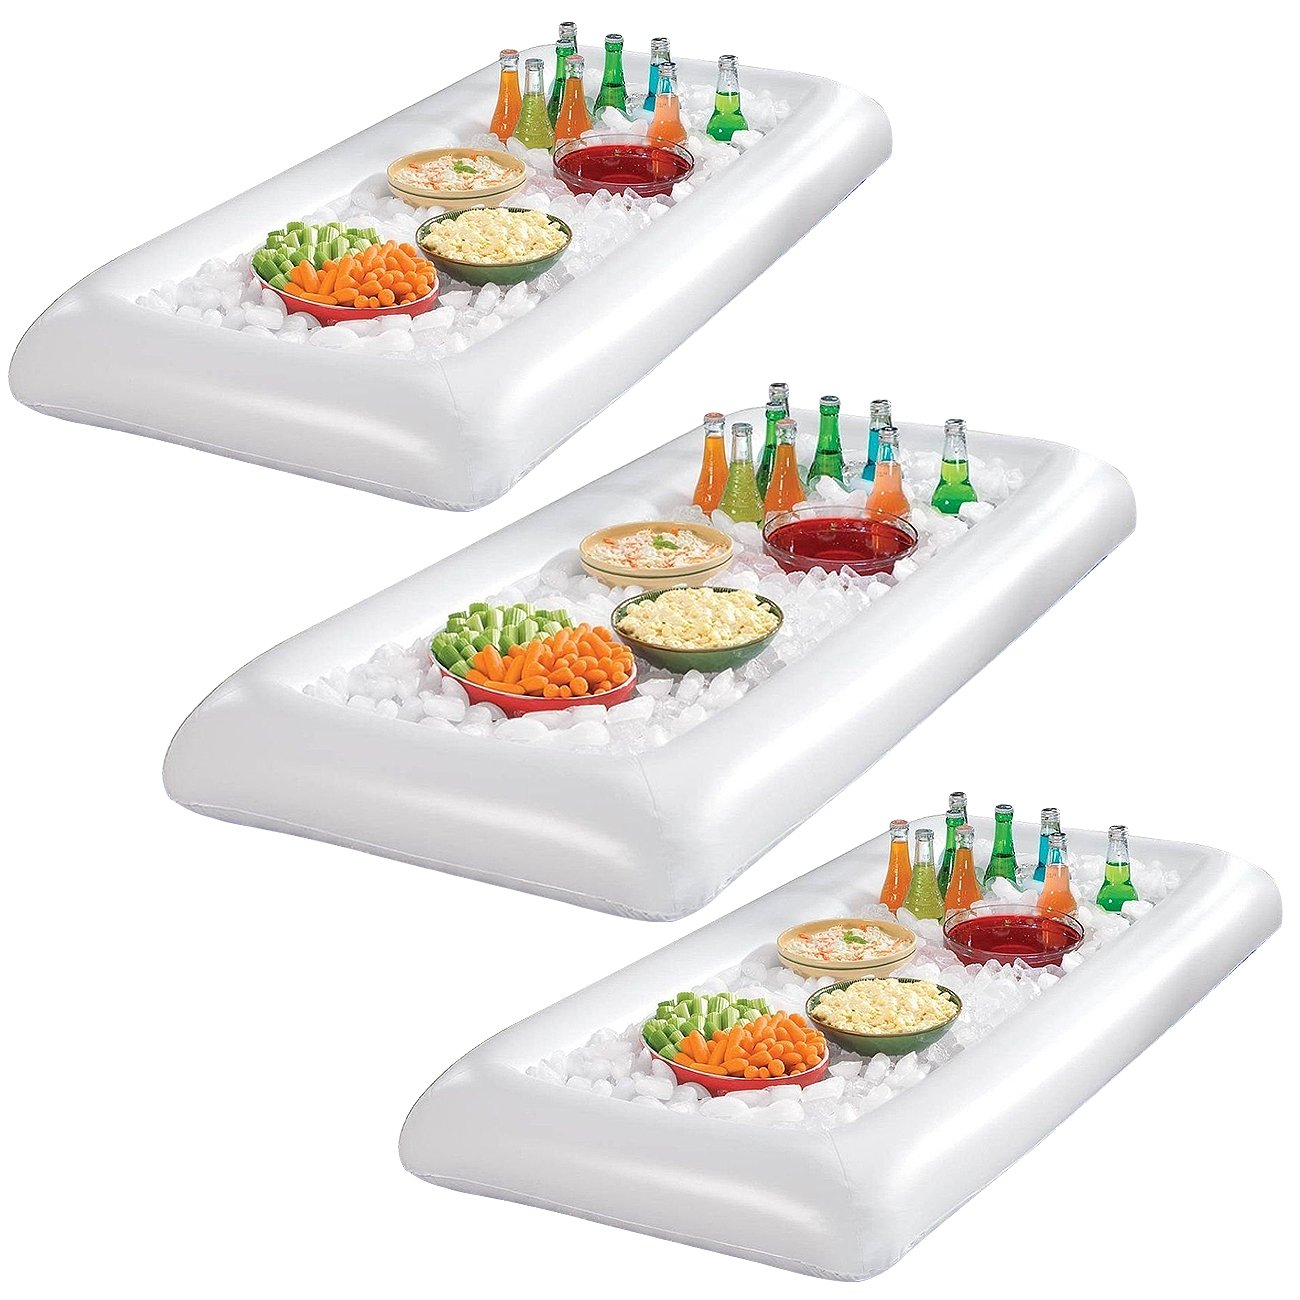 Sorbus White Inflatable Serving Bar With Drain Plug by Sorbus (3 Salad Bars) INF-SB-3PK